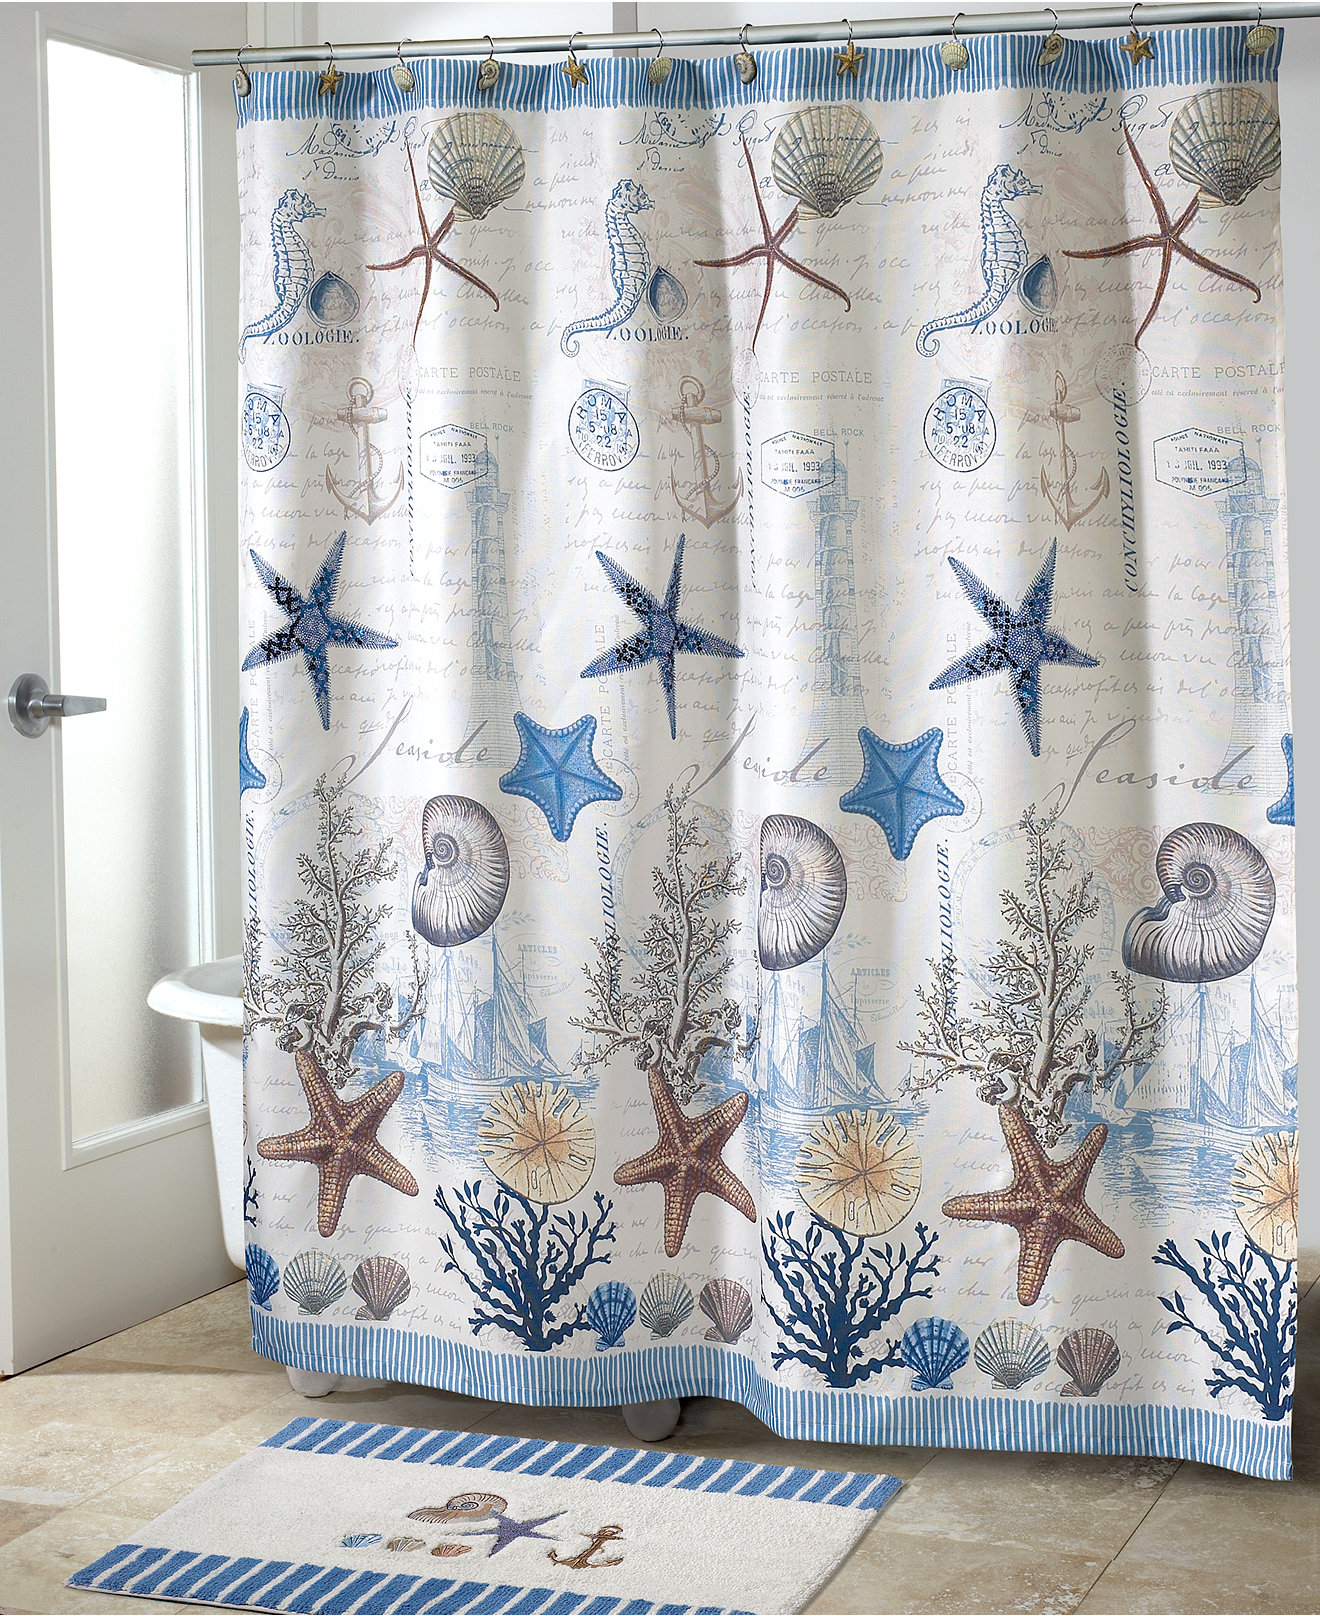 Chevron bathroom sets with shower curtain and rugs - Avanti Bath Antigua Collection